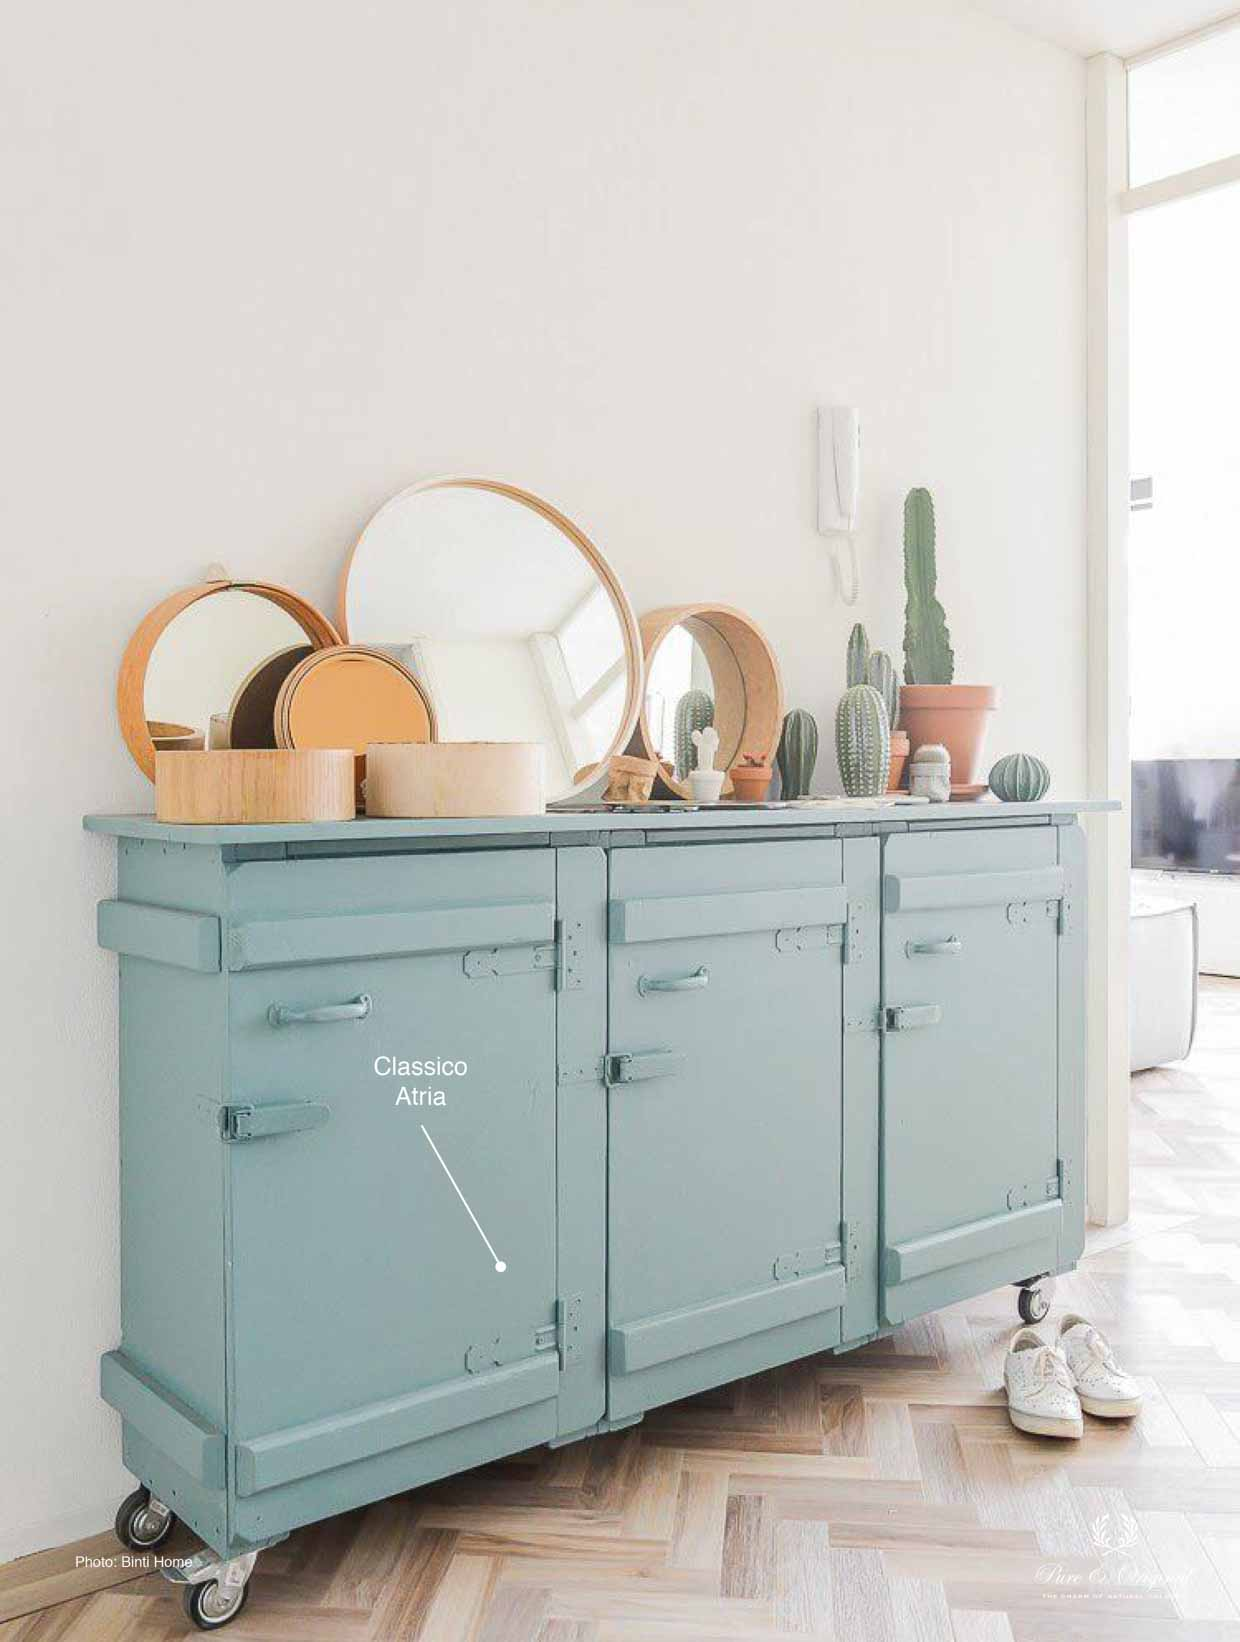 Classico chalk paint in the colour Atria